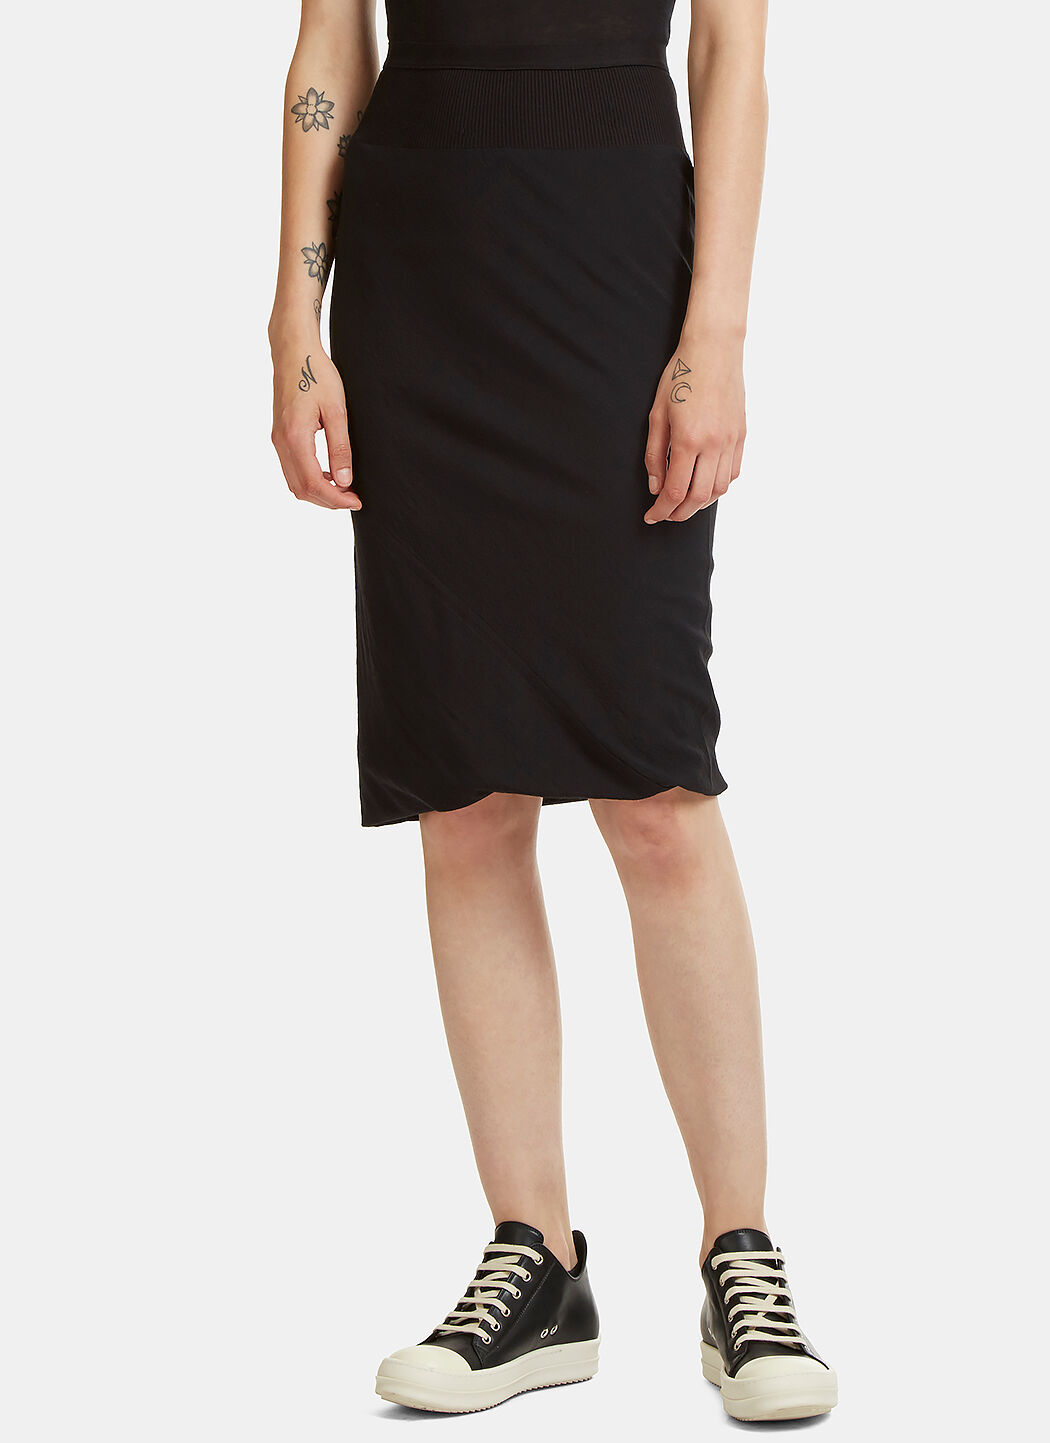 Clearance Wiki Asymmetric Seam Ribbed Band Skirt Rick Owens Huge Surprise Cheap Online Limited Cheap View 4vAg8cb